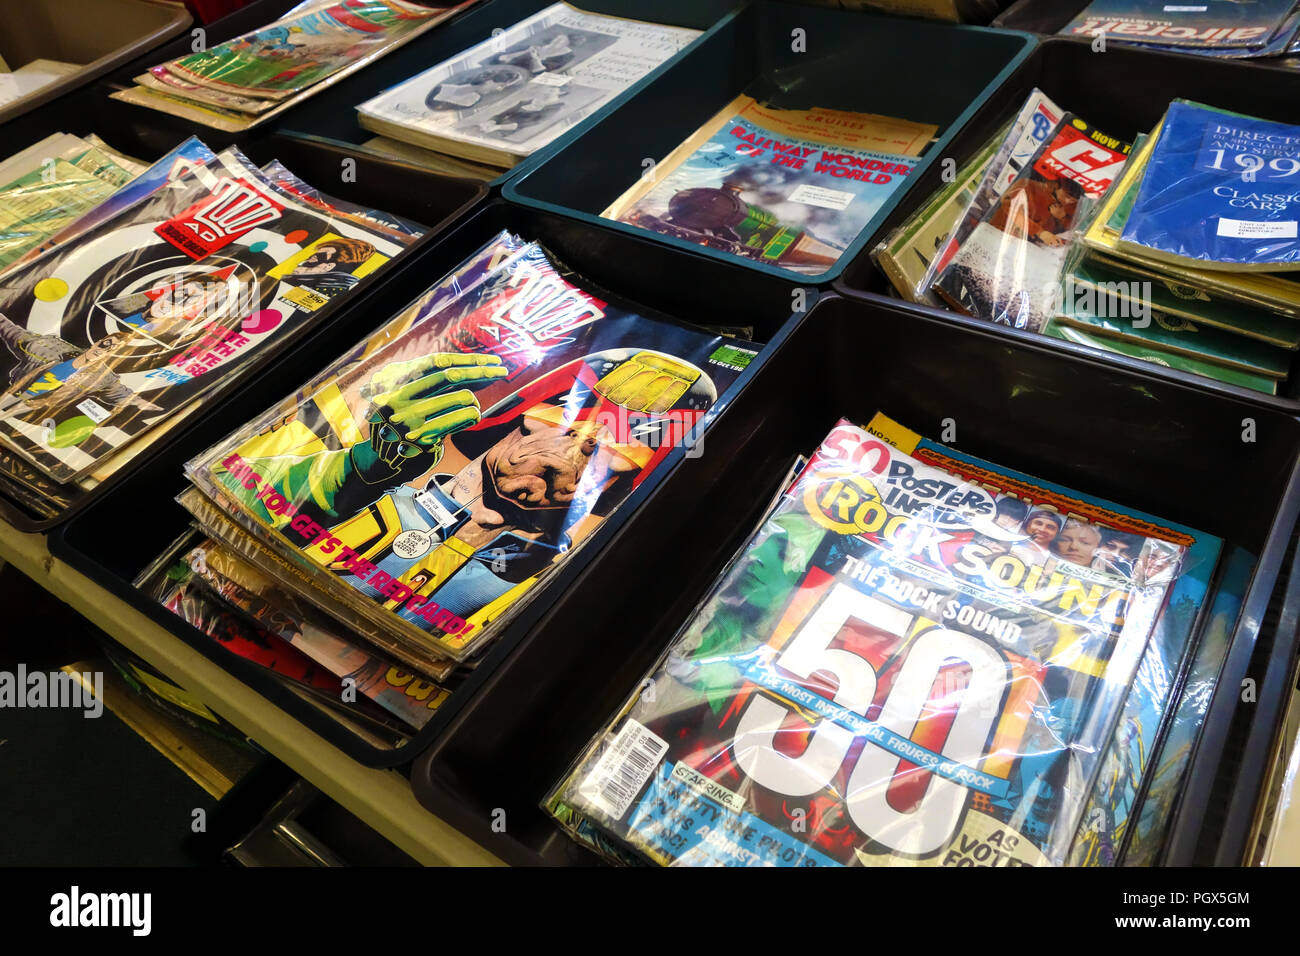 Comic magazine and Bric-à-brac on display an English Antiques centre - Stock Image